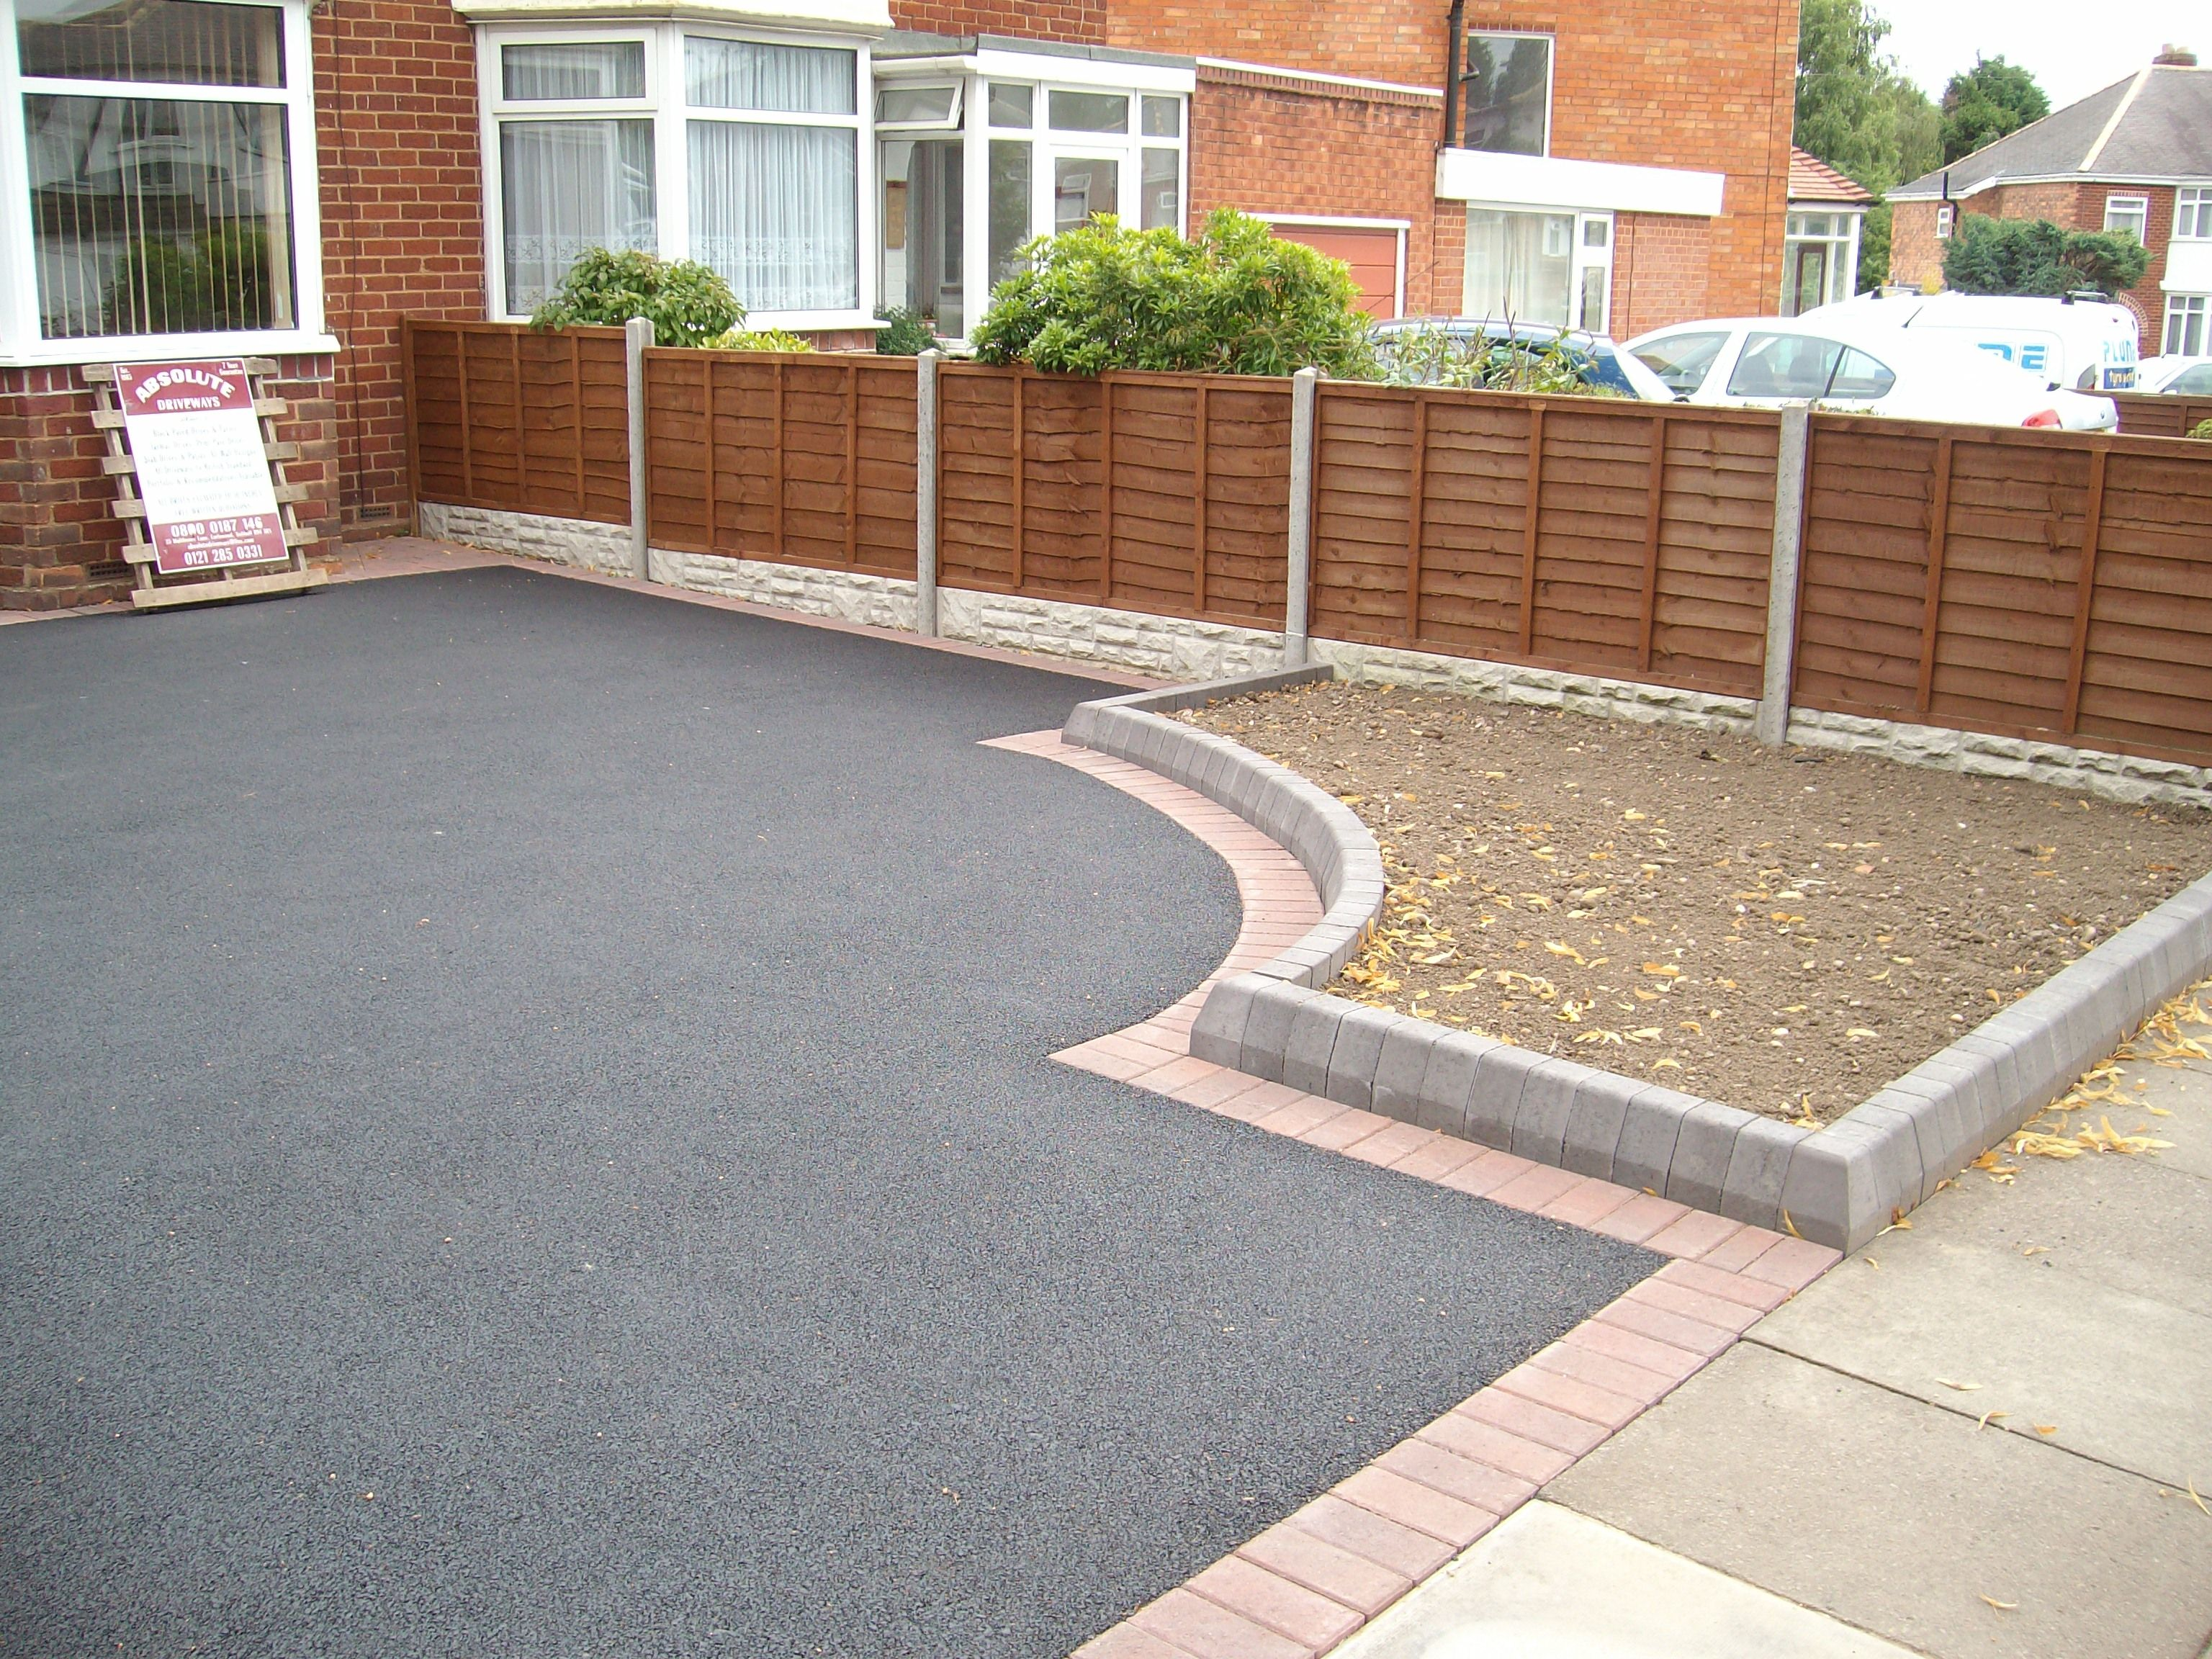 Best 25 tarmac driveways ideas on pinterest driveway for Sloped driveway options